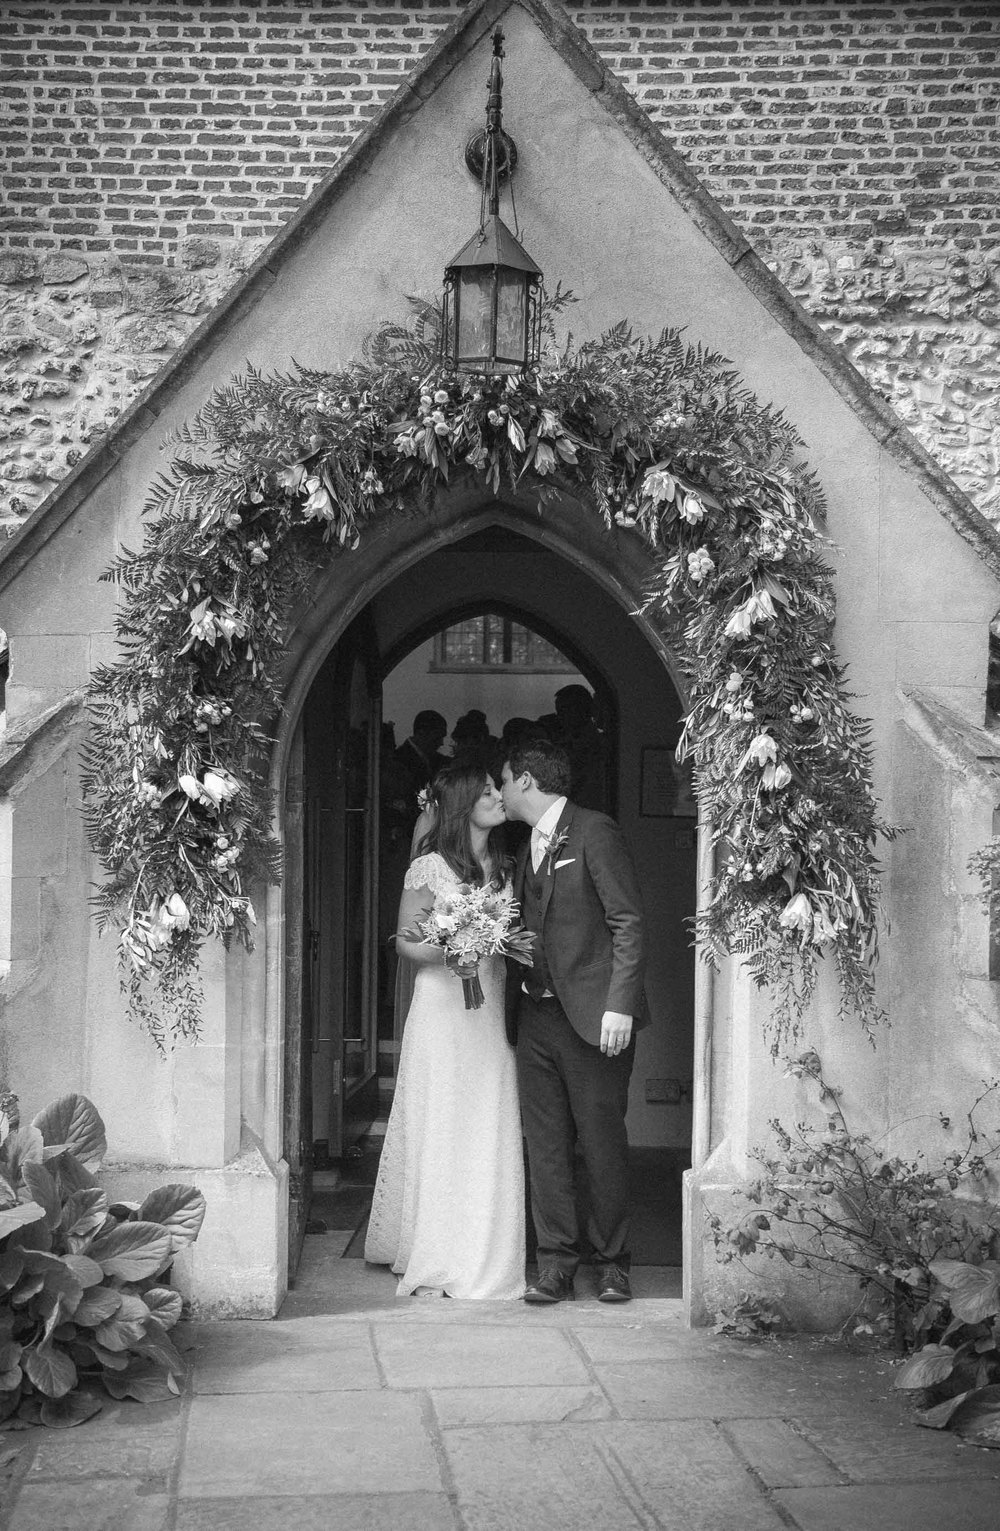 barnes-wedding-adam-rowley-photographer-st-mary's-church-2